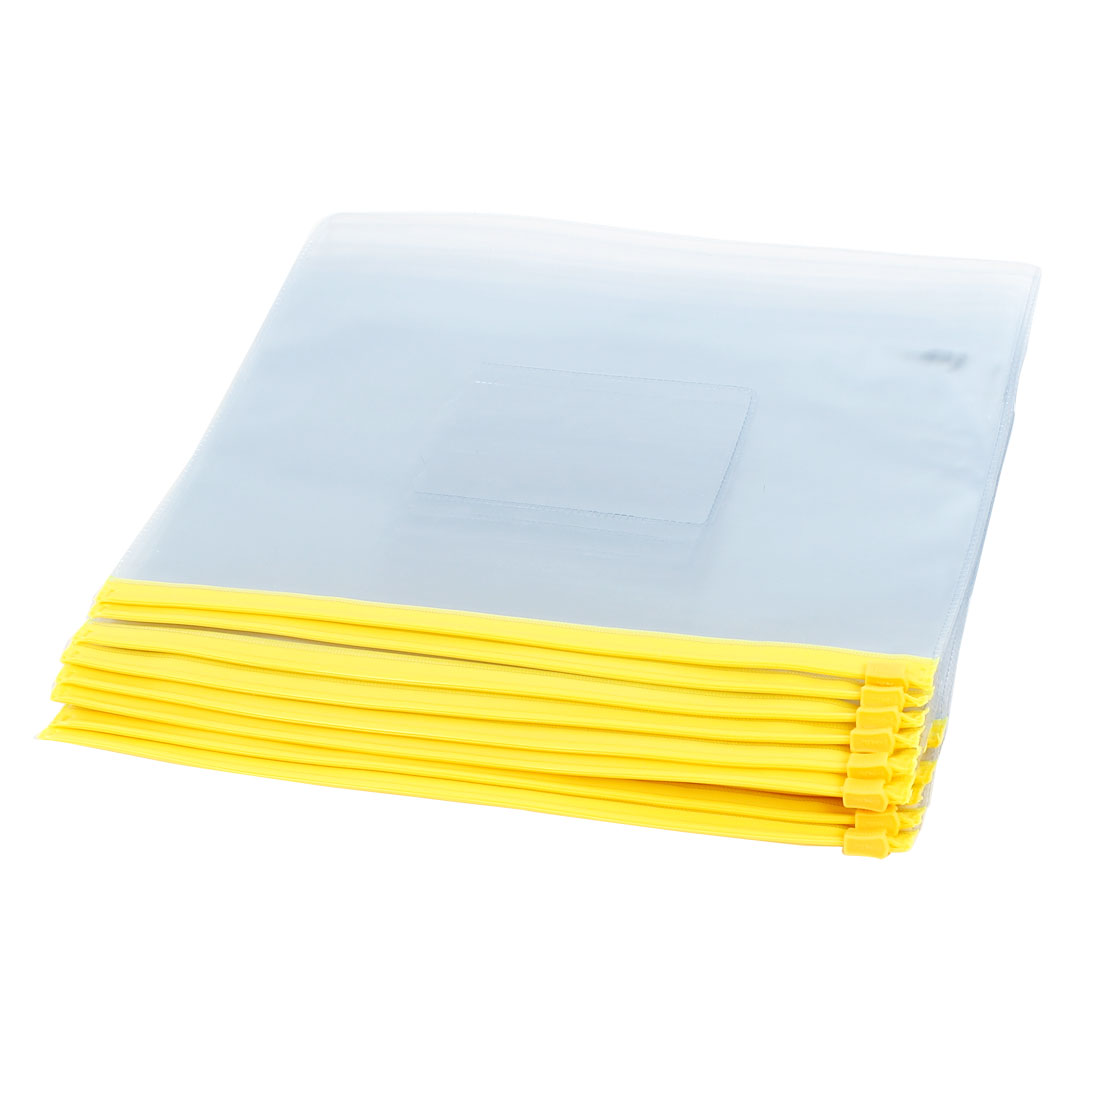 Office School Plastic Zipper Closure Bag File A5 Paper Storage Document Organizer Folder Yellow 12pcs